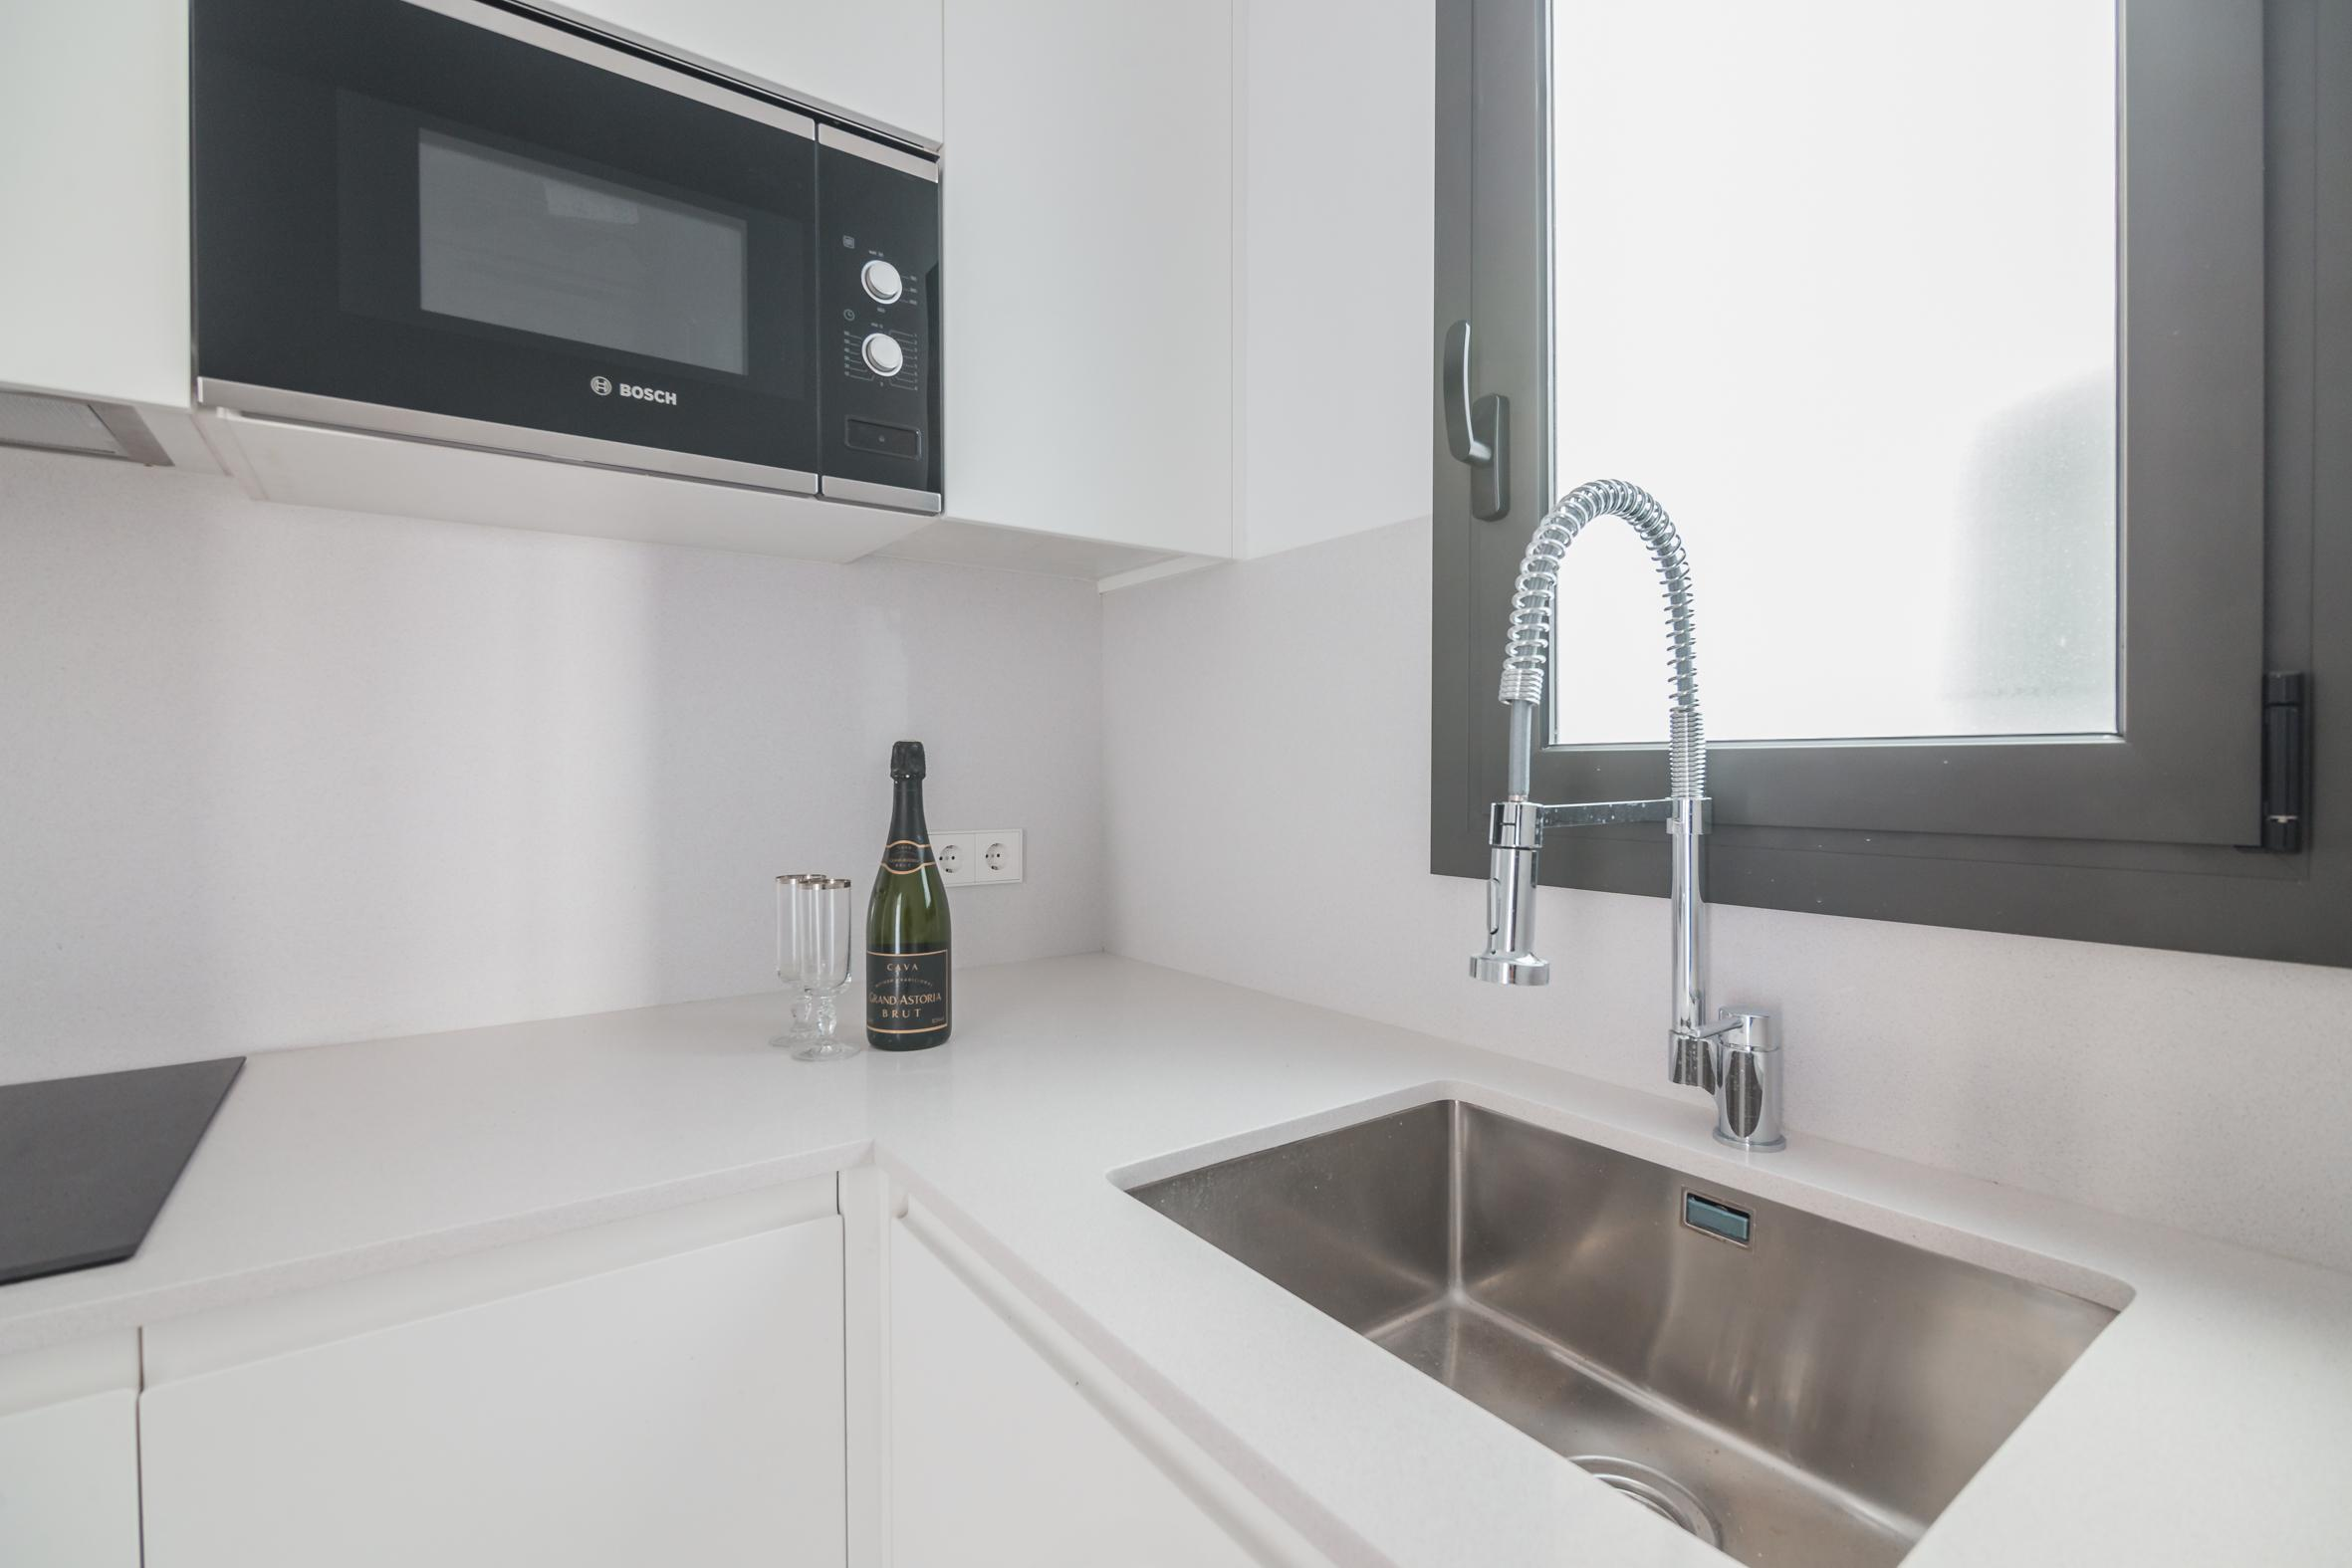 244010 Flat for sale in Ciutat Vella, Barri Gótic 12